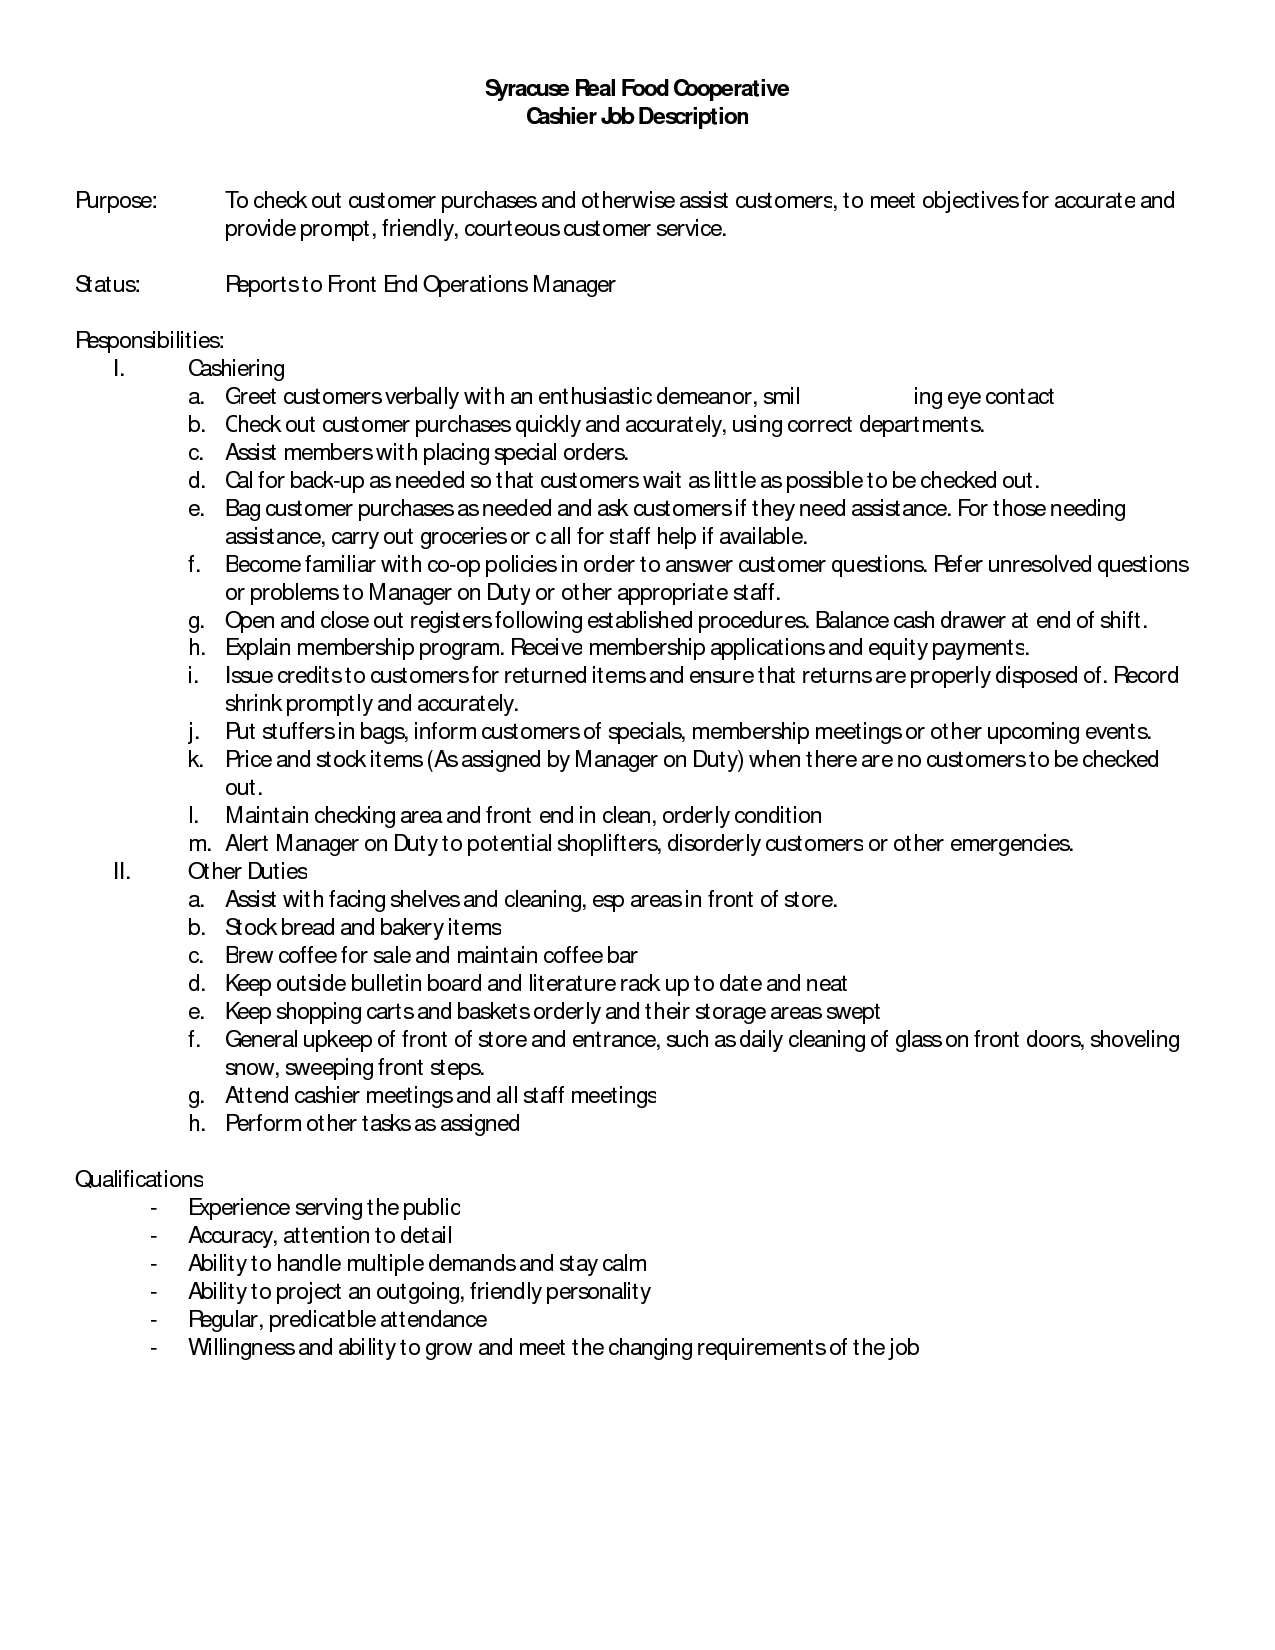 grocery store cashier duties - Sample Resume For A Cashier At Grocery Store